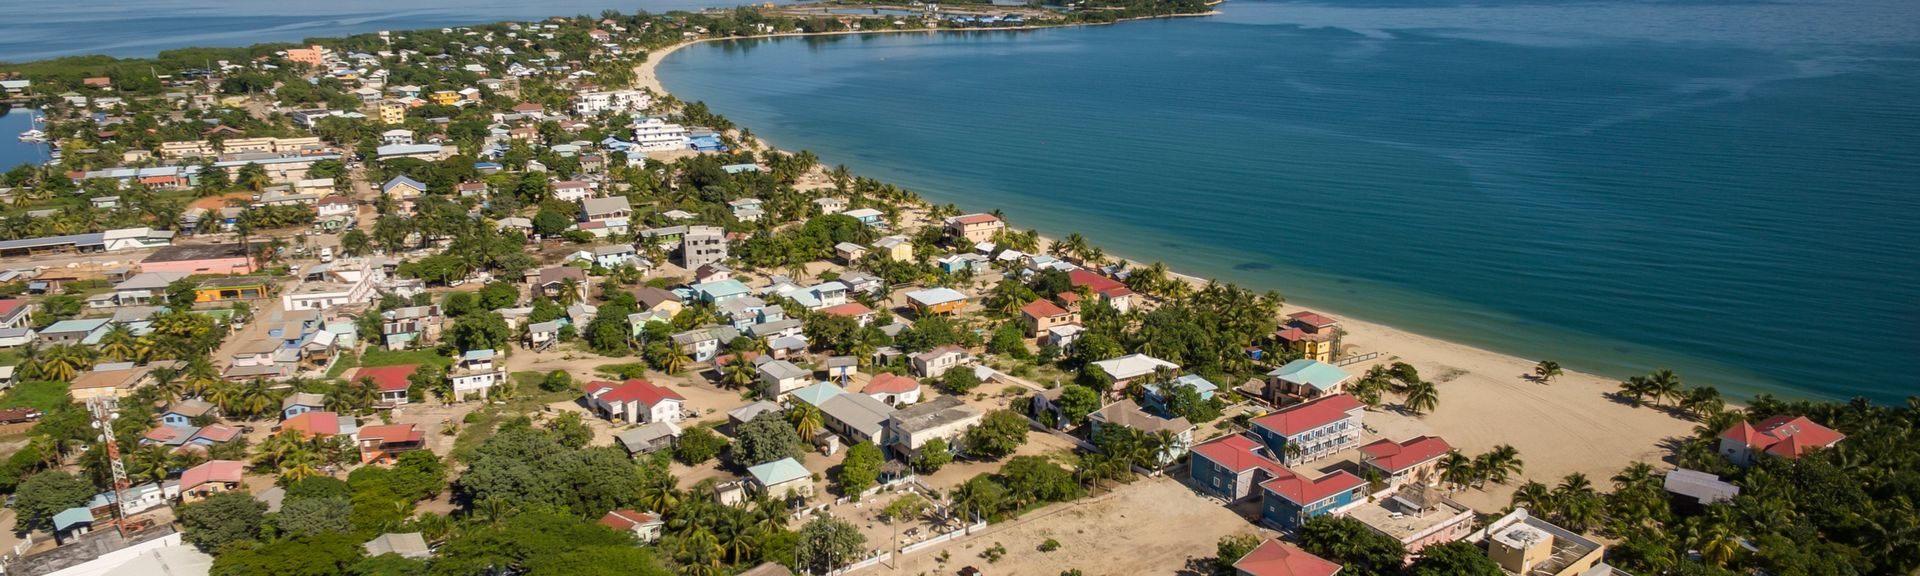 District de Stann Creek, Belize